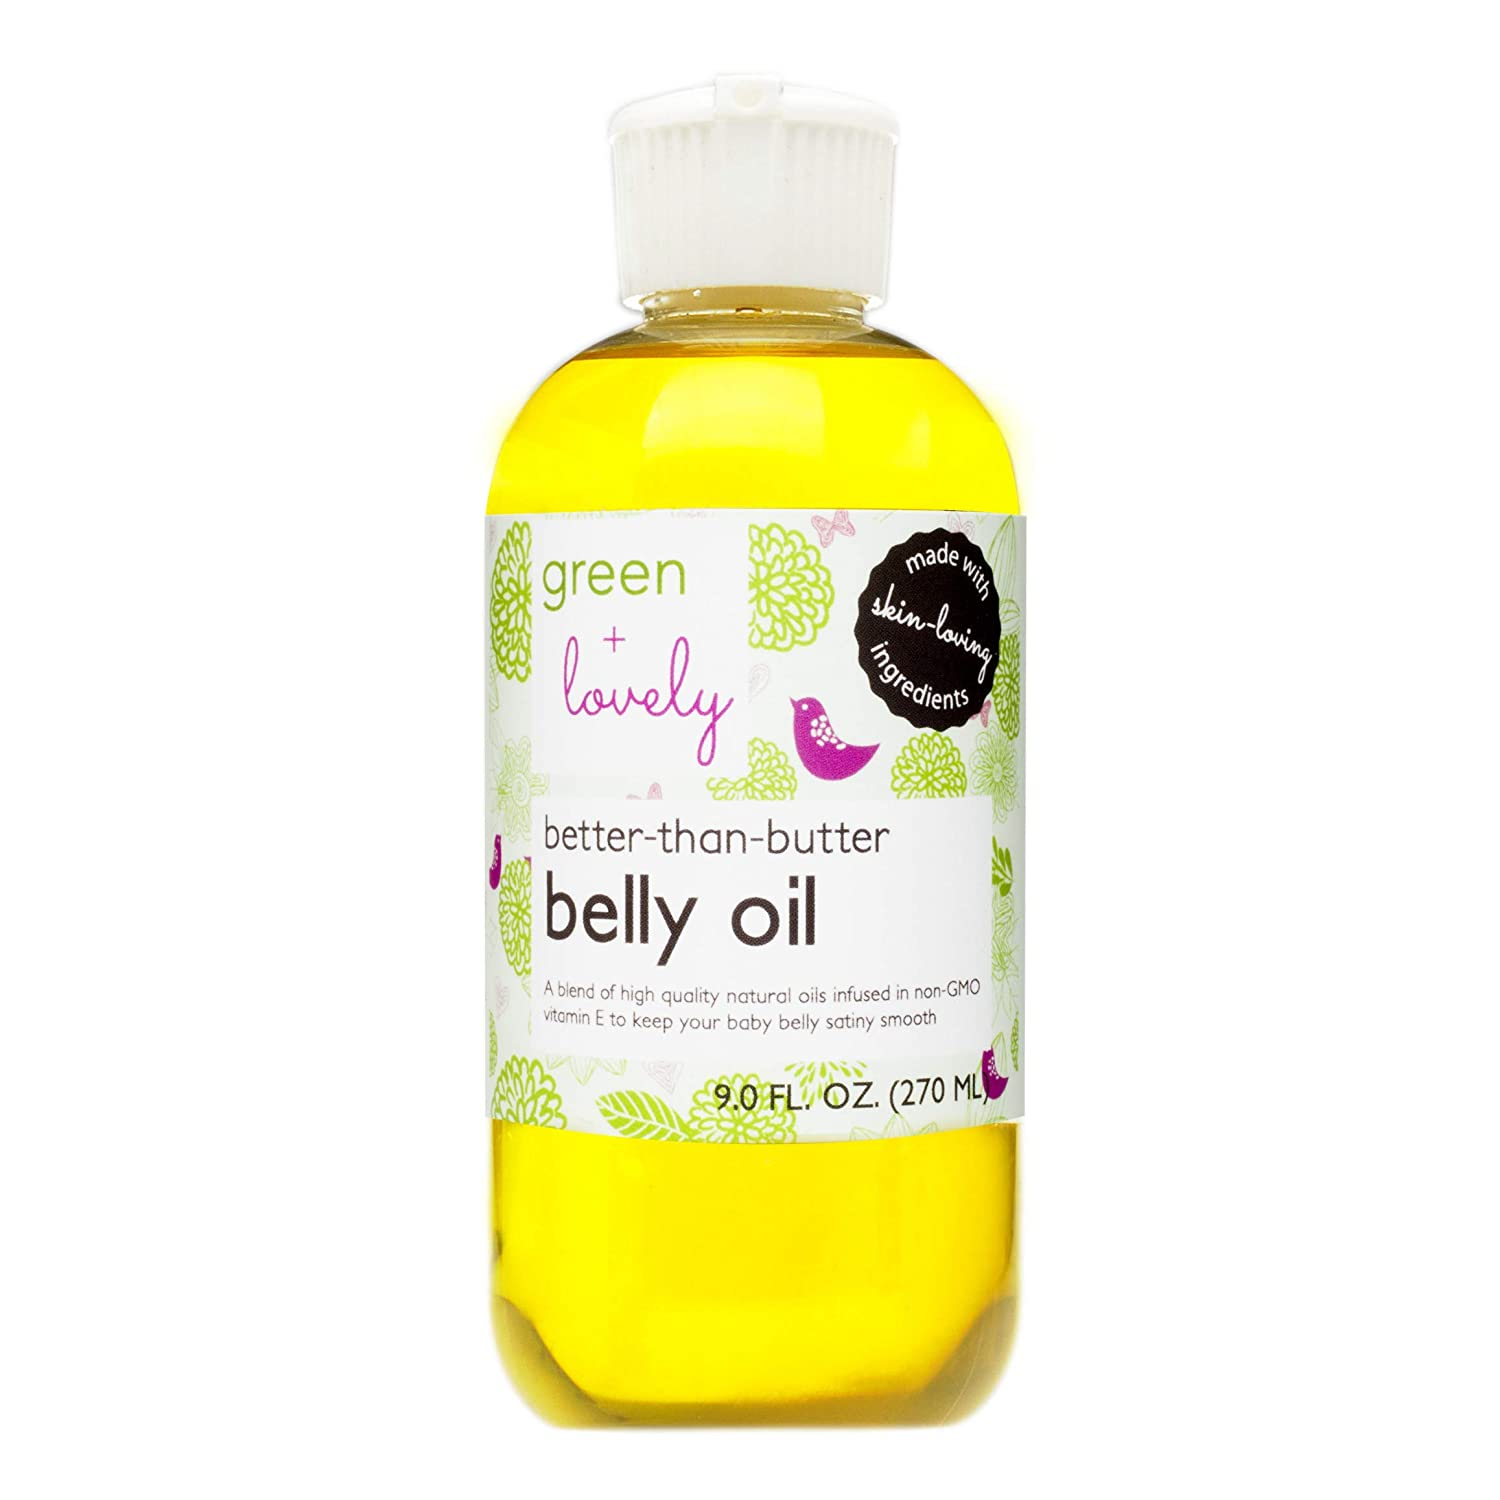 Better than Butter Belly Oil(Unscented) | Pregnancy Stretch Mark Prevention | 9 fl oz. Lasts for up to 6 Months | Natural Oil and Vitamin E Enriched for Amazing Skin Pre/Post Pregnancy